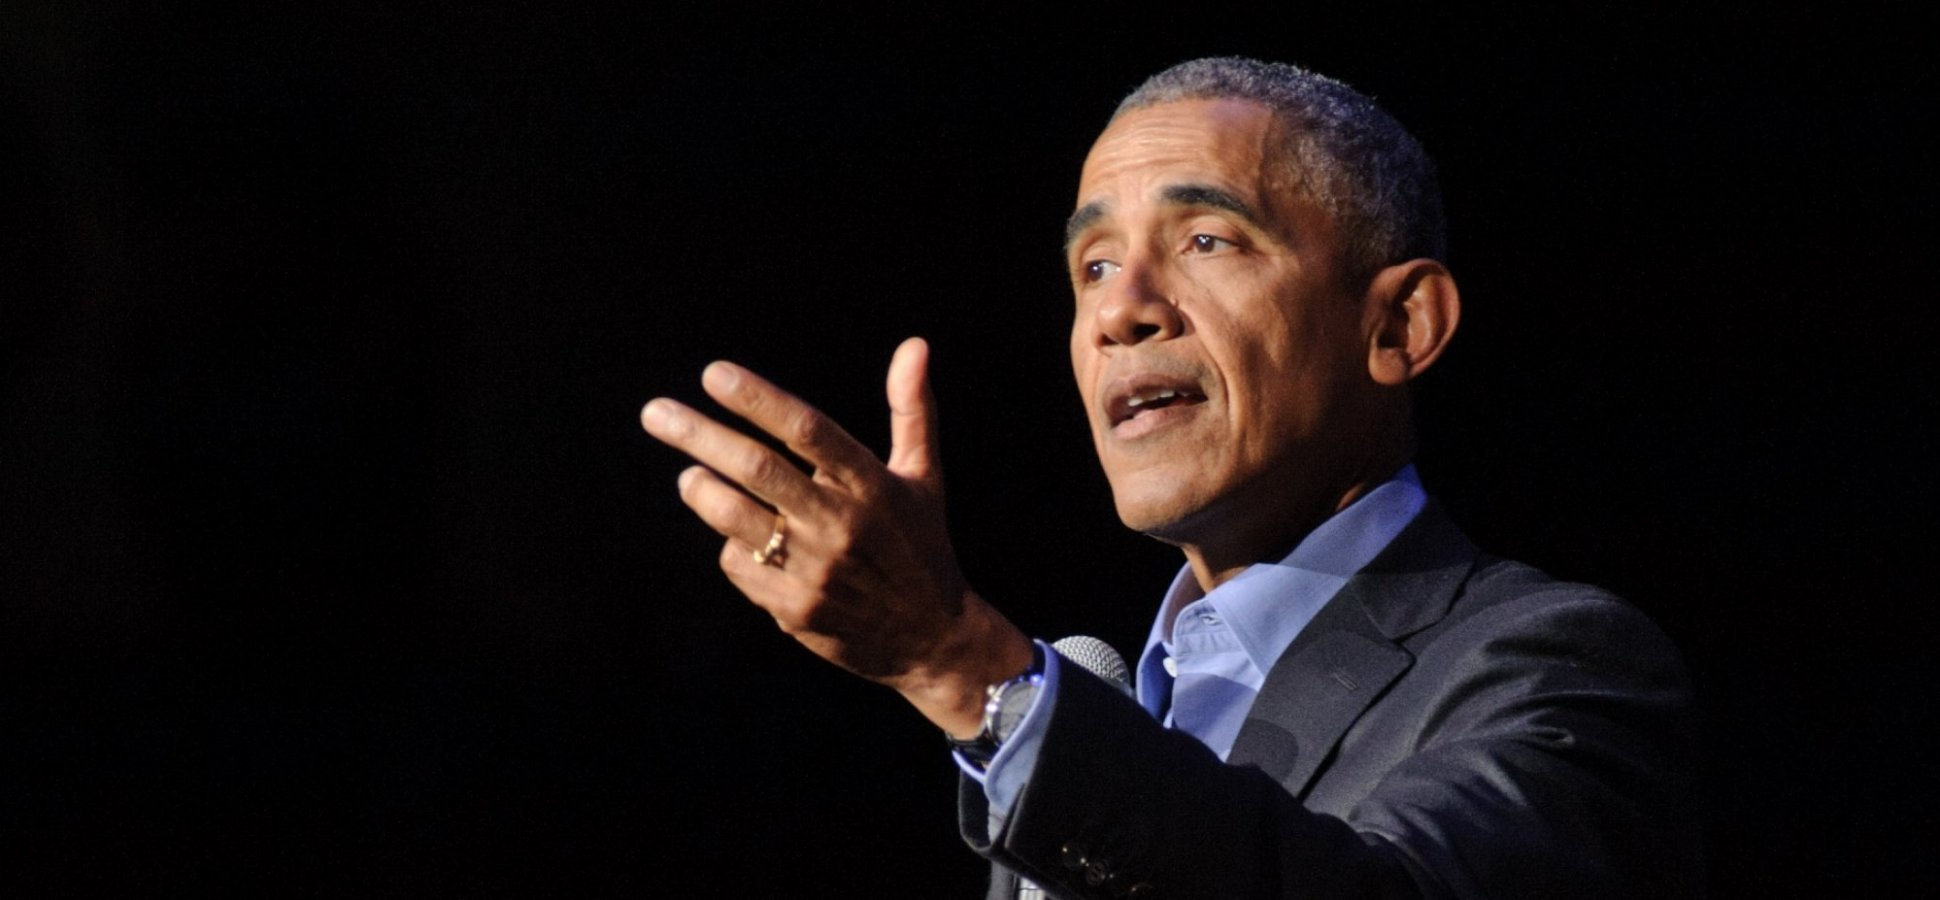 If You're Looking for Something to Read in 2018, Barack Obama Has 10 Suggestions for You